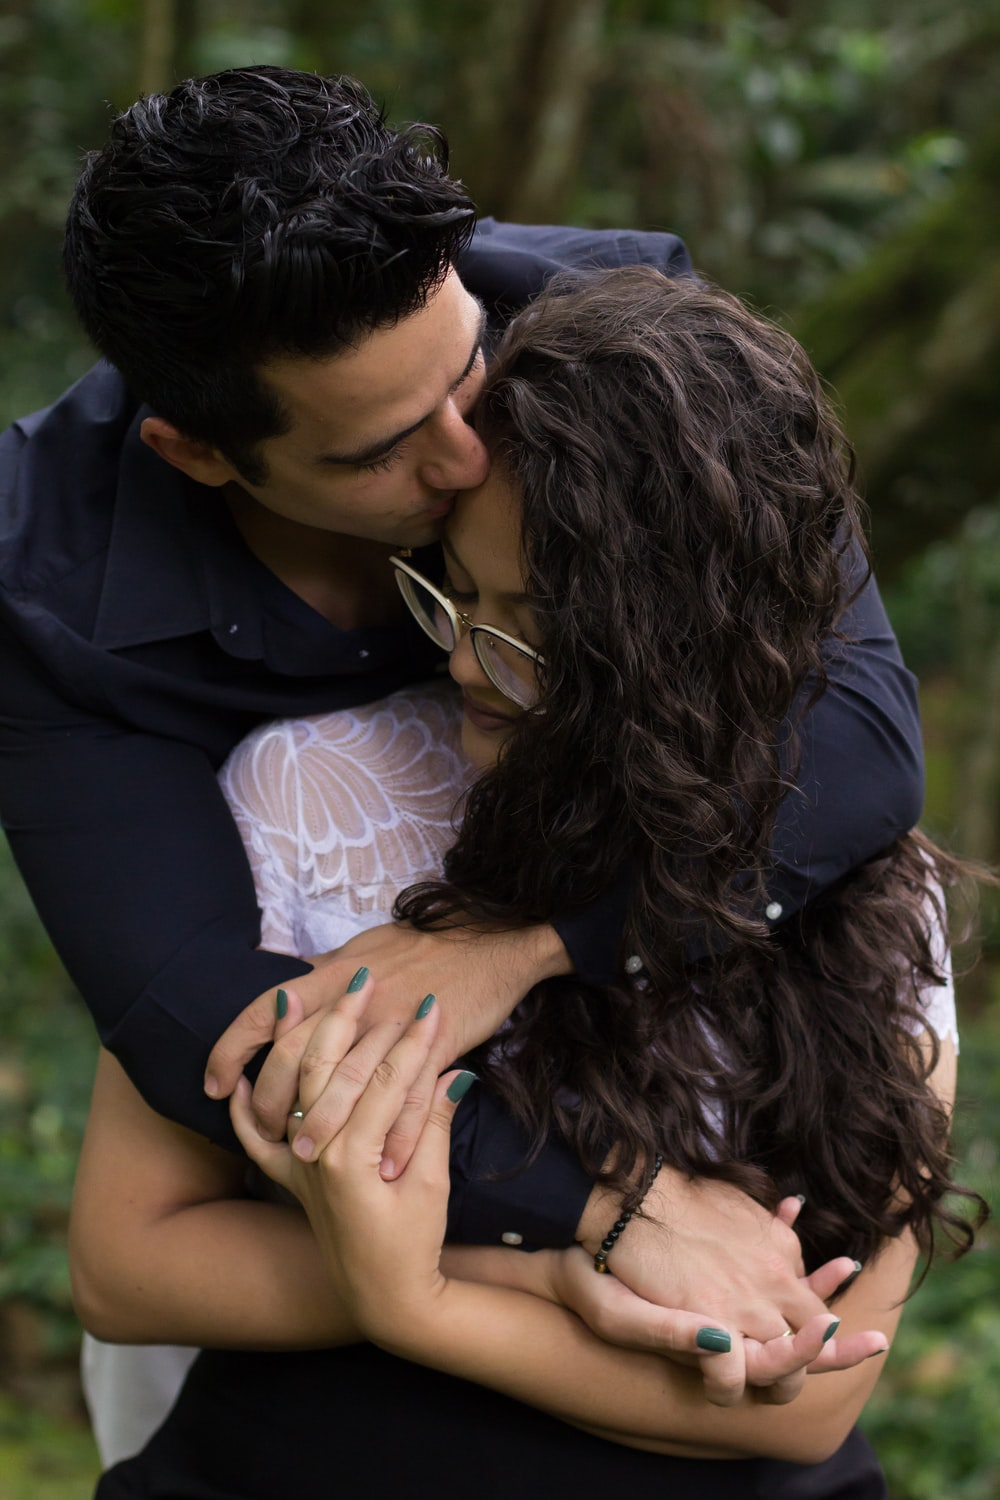 man hugging woman on her back and kissing her forehead